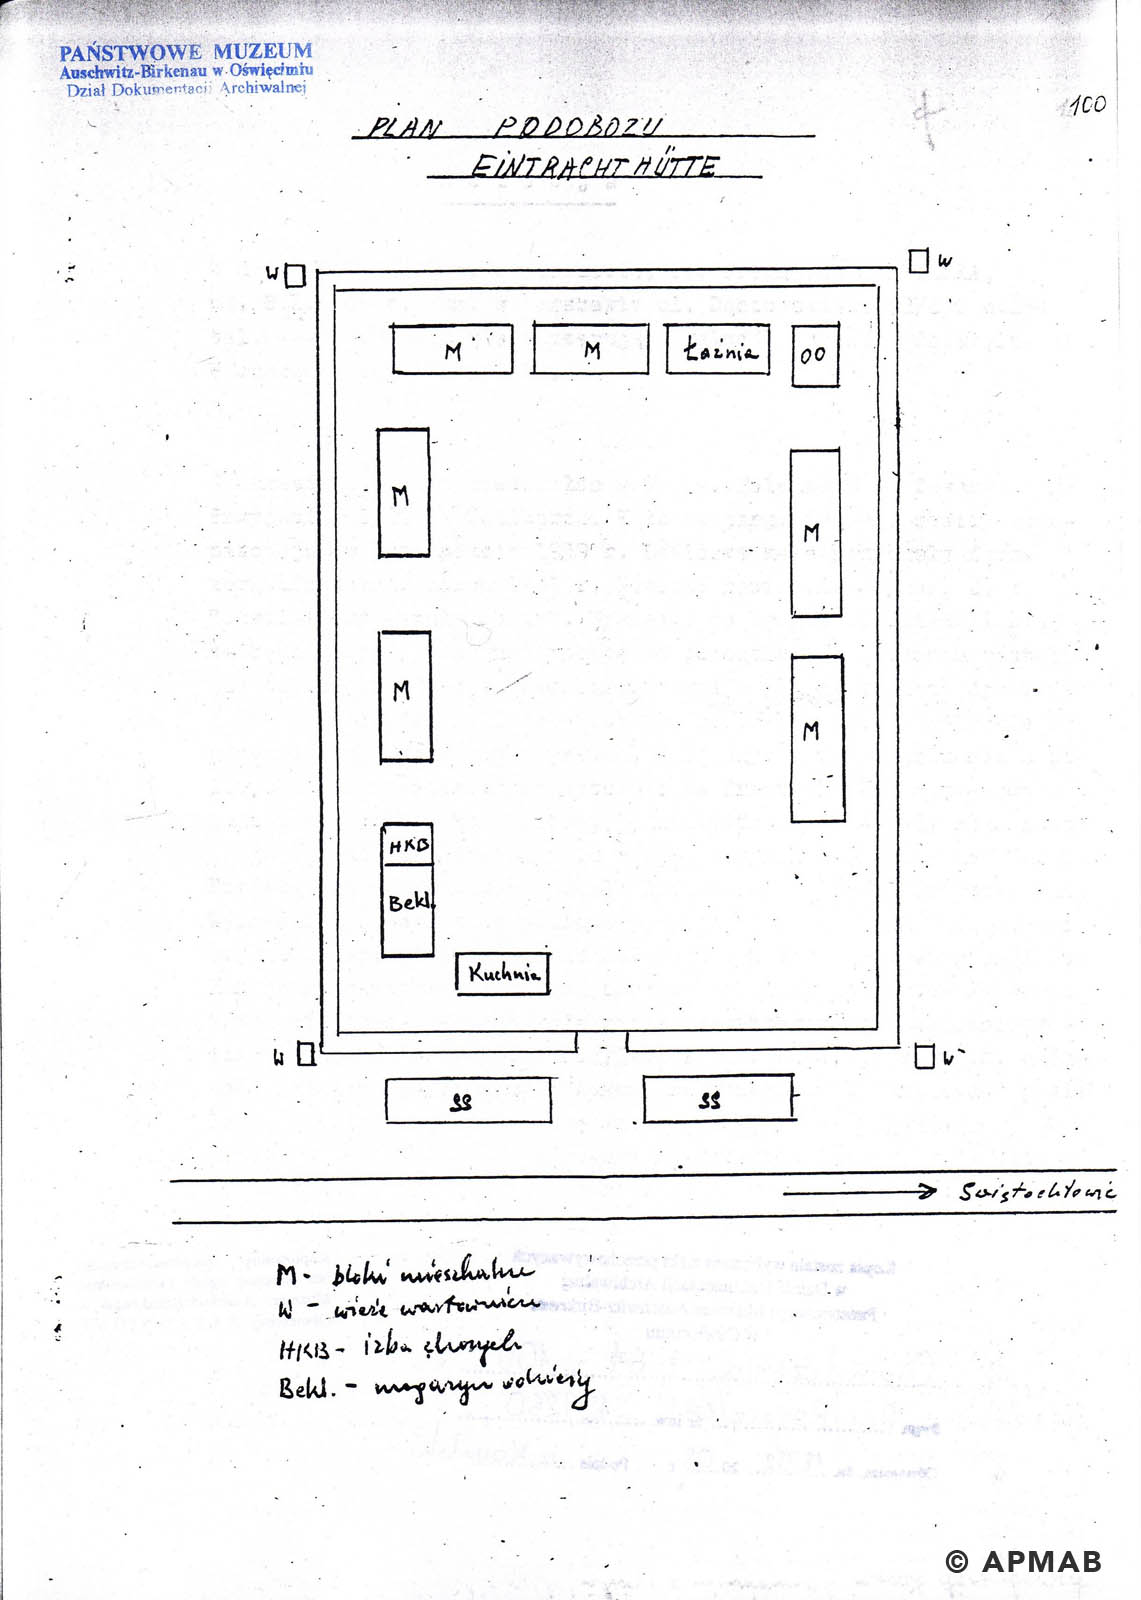 Drawing of Eintrachthütte sub camp by fomer prisoner E APMAB jpg